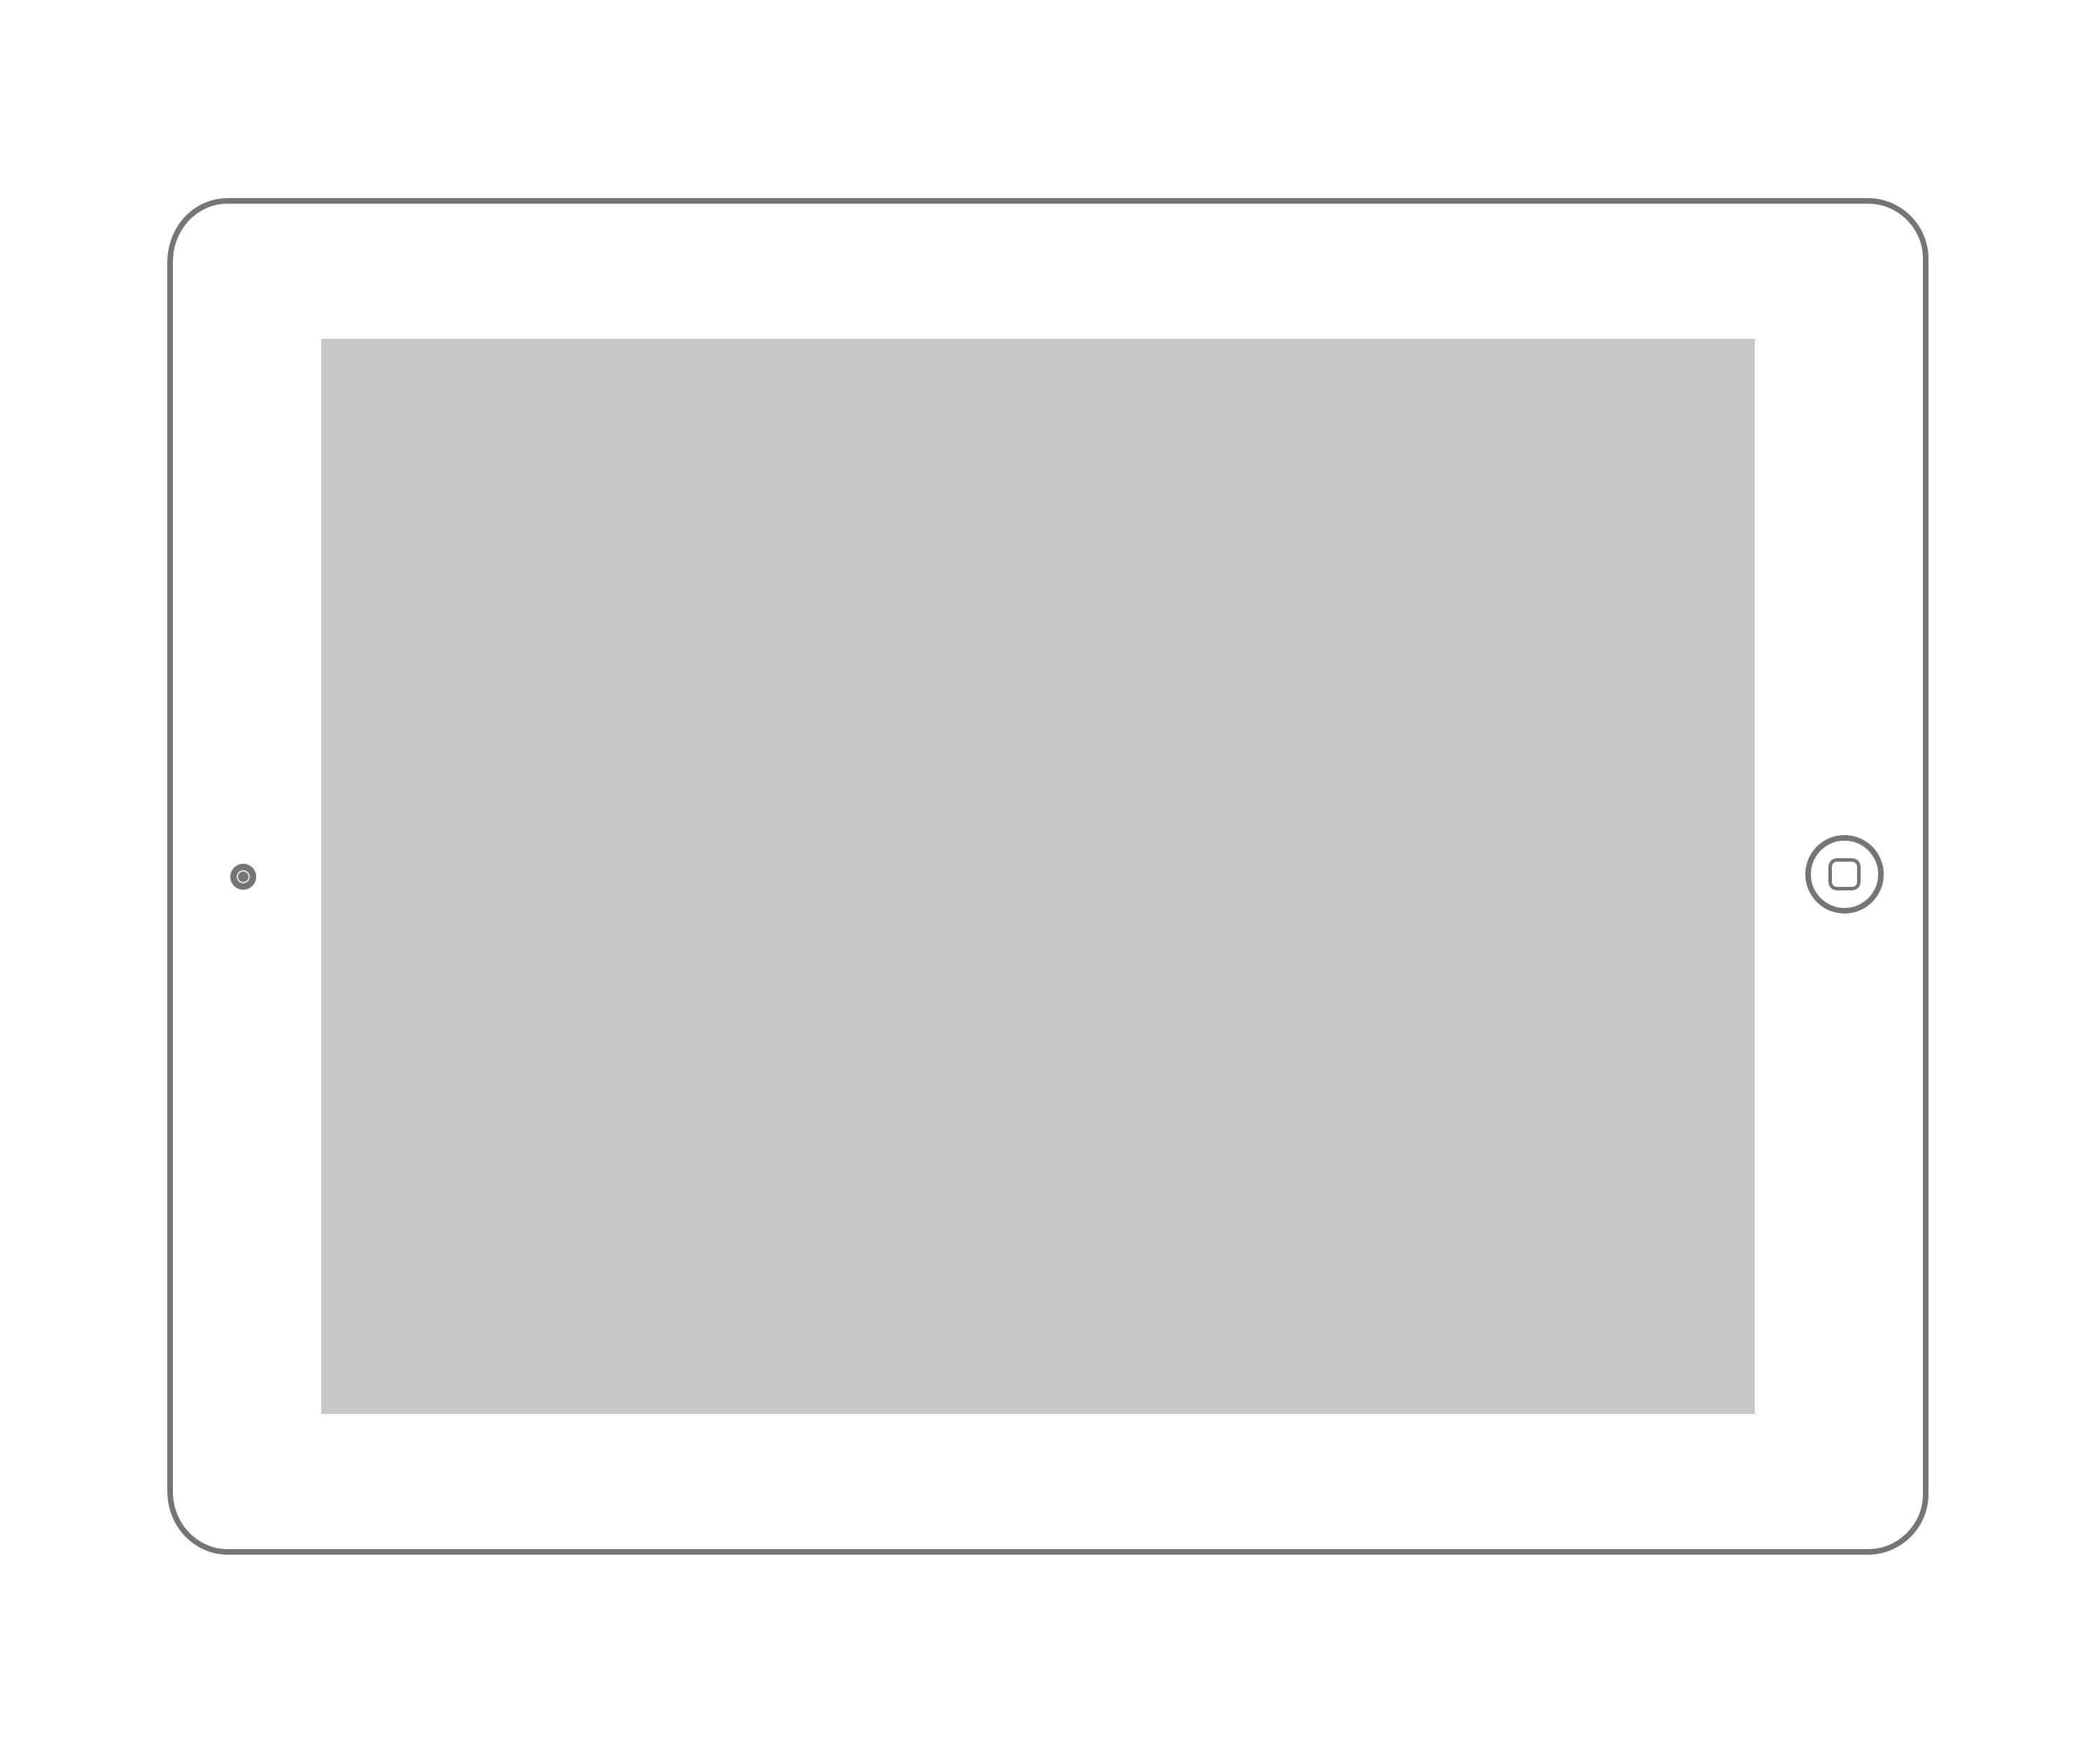 Ipad Air Frame Png Picture 372115 Ipad Air Frame Png